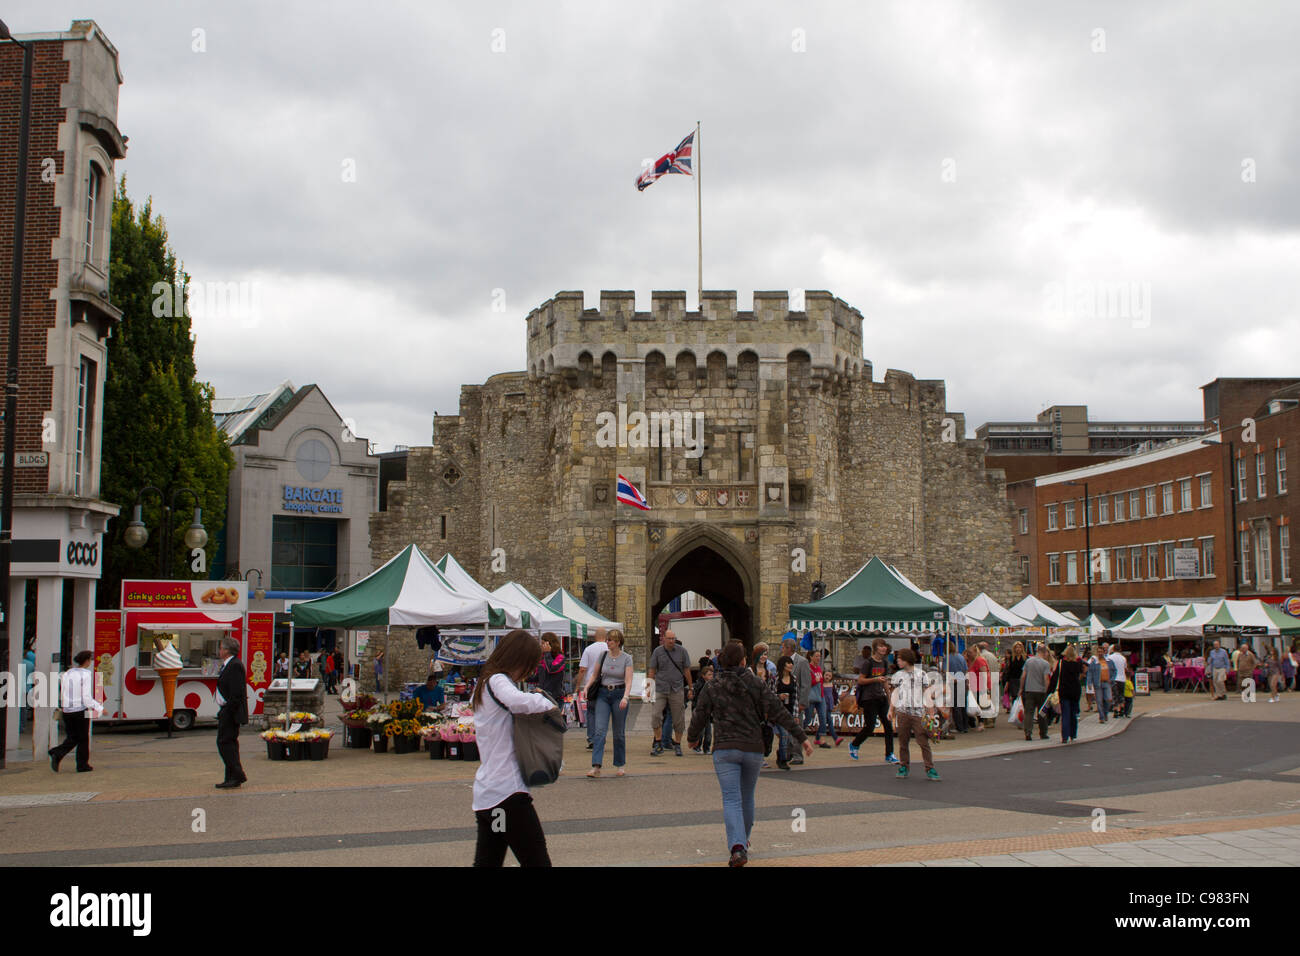 SOUTHAMPTON, UK - AUG 13: Crowd in pedestrian area of Southampton with historical Bargate in the background. - Stock Image